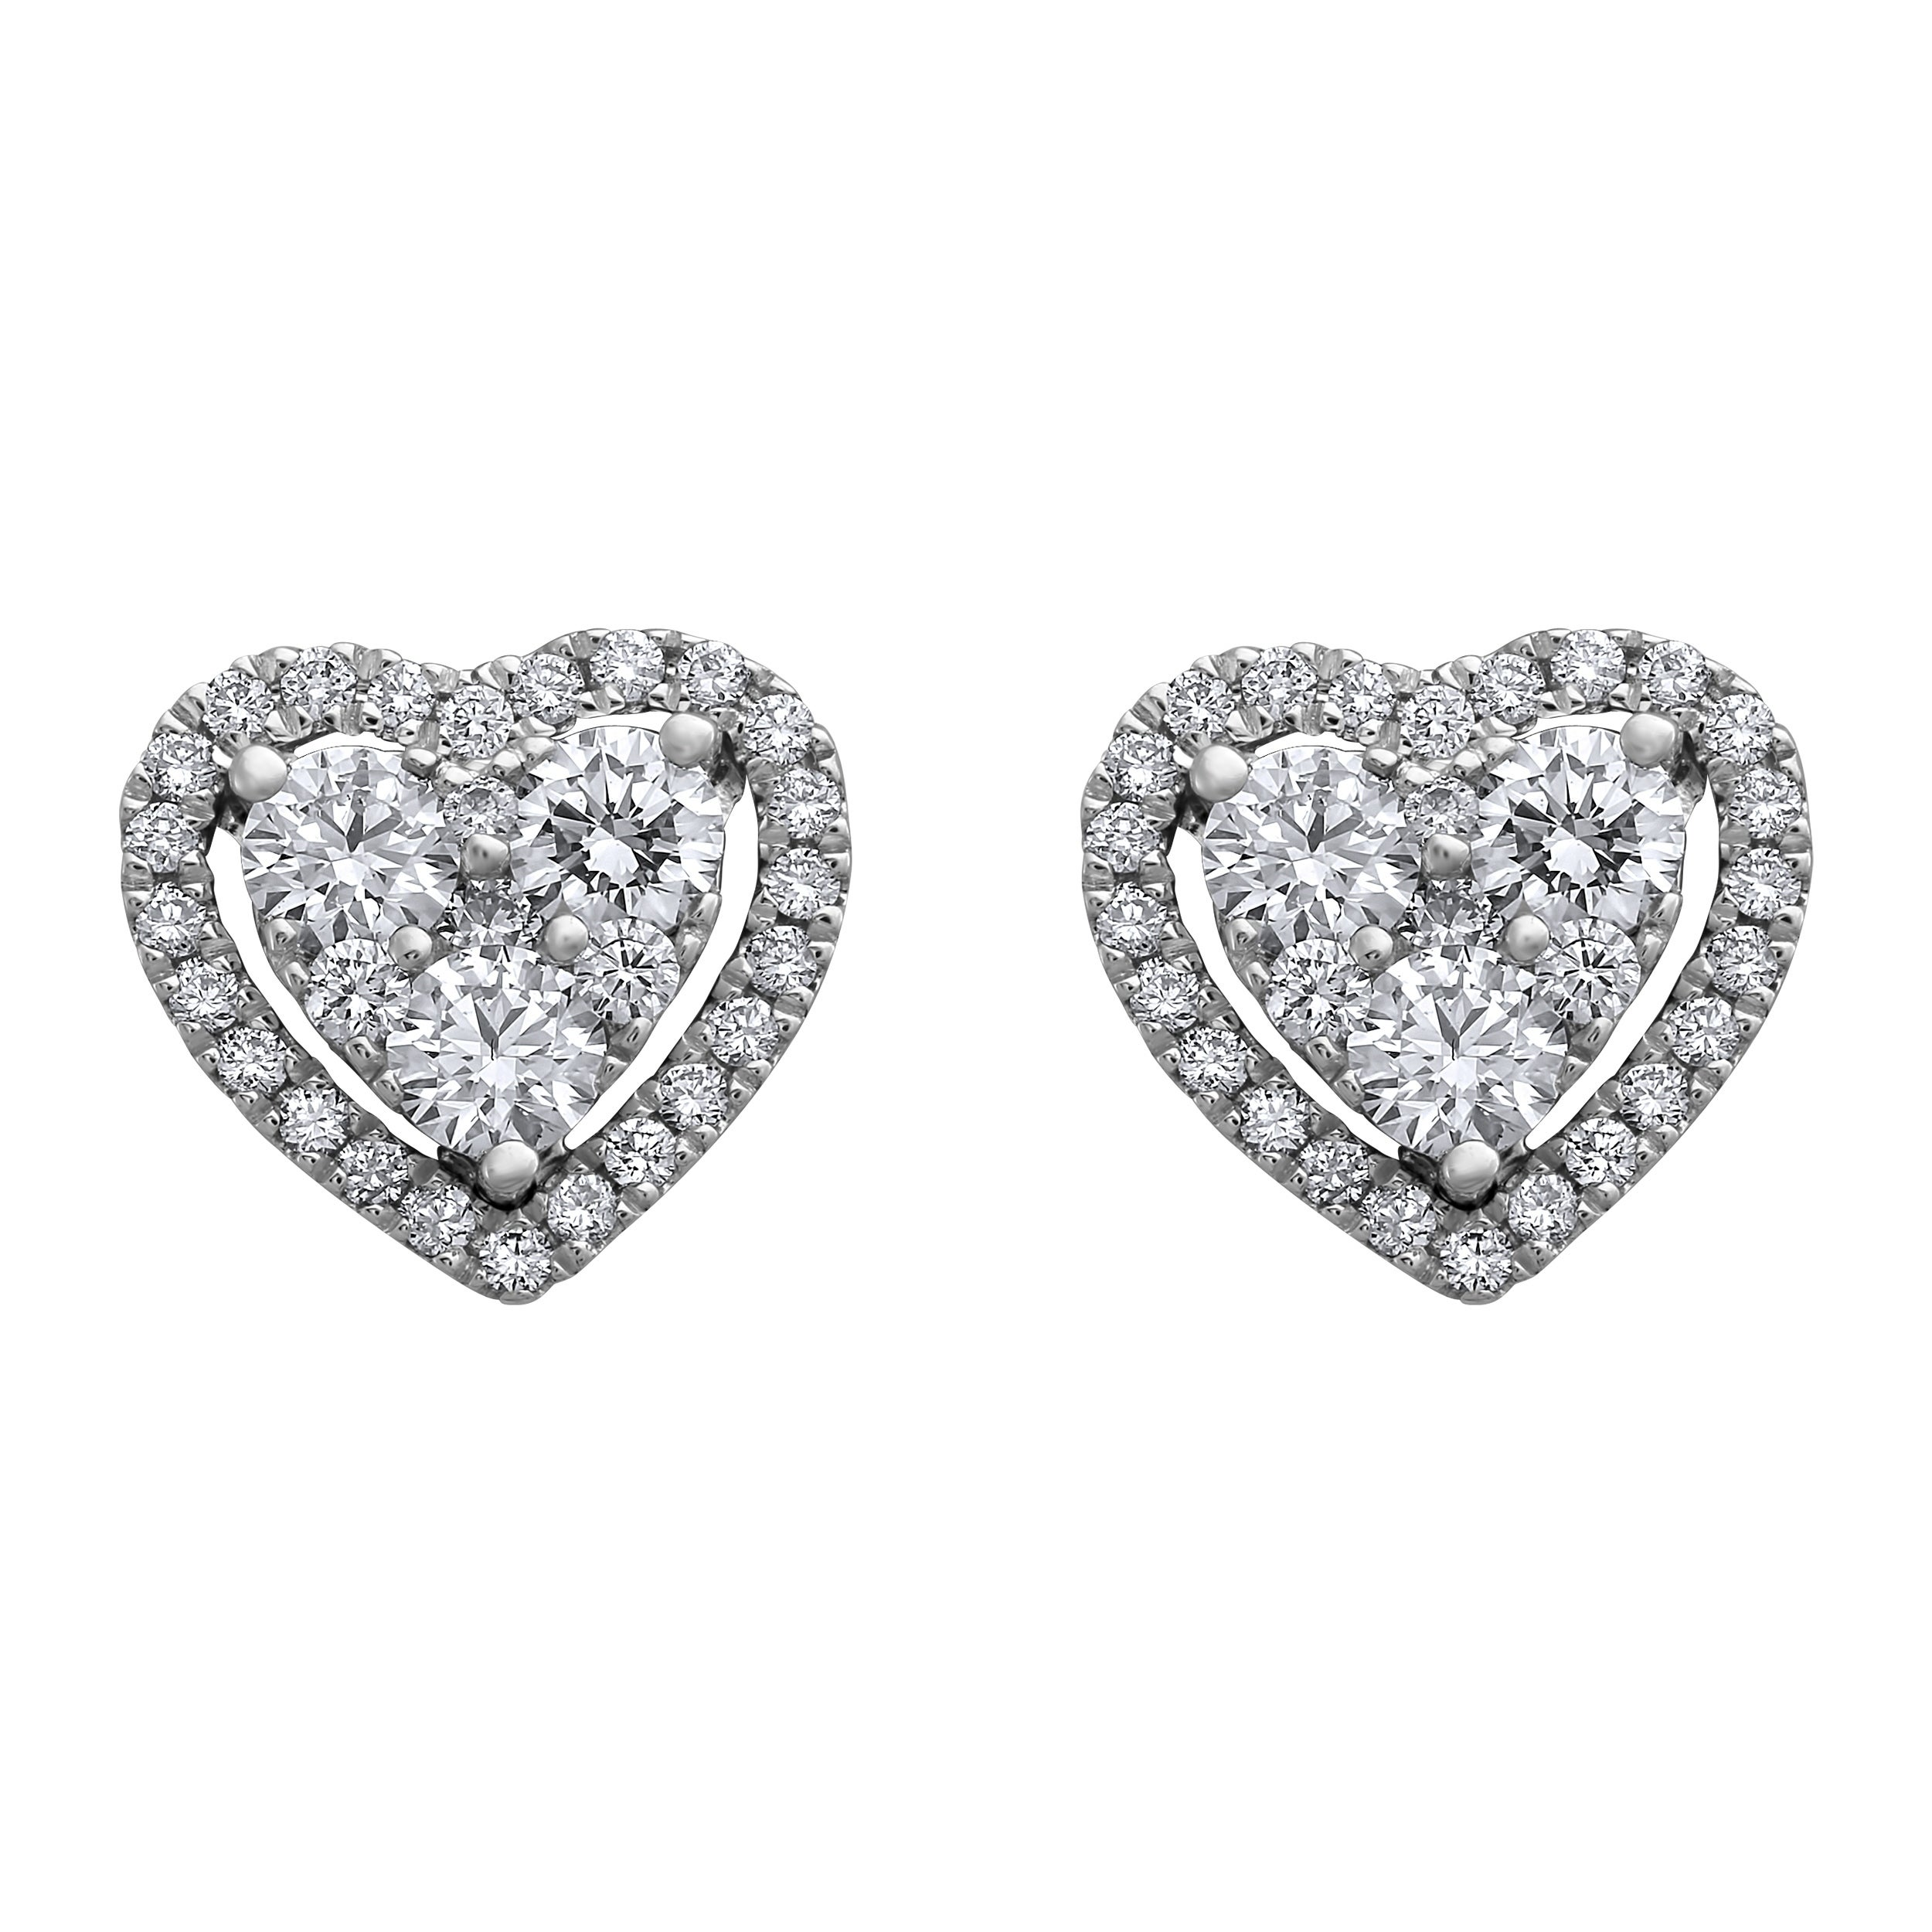 14k White Gold 3 4 Ct Tdw Diamonds Heart Stud Earrings By Beverly Hills Charm On Sale Overstock 28726664